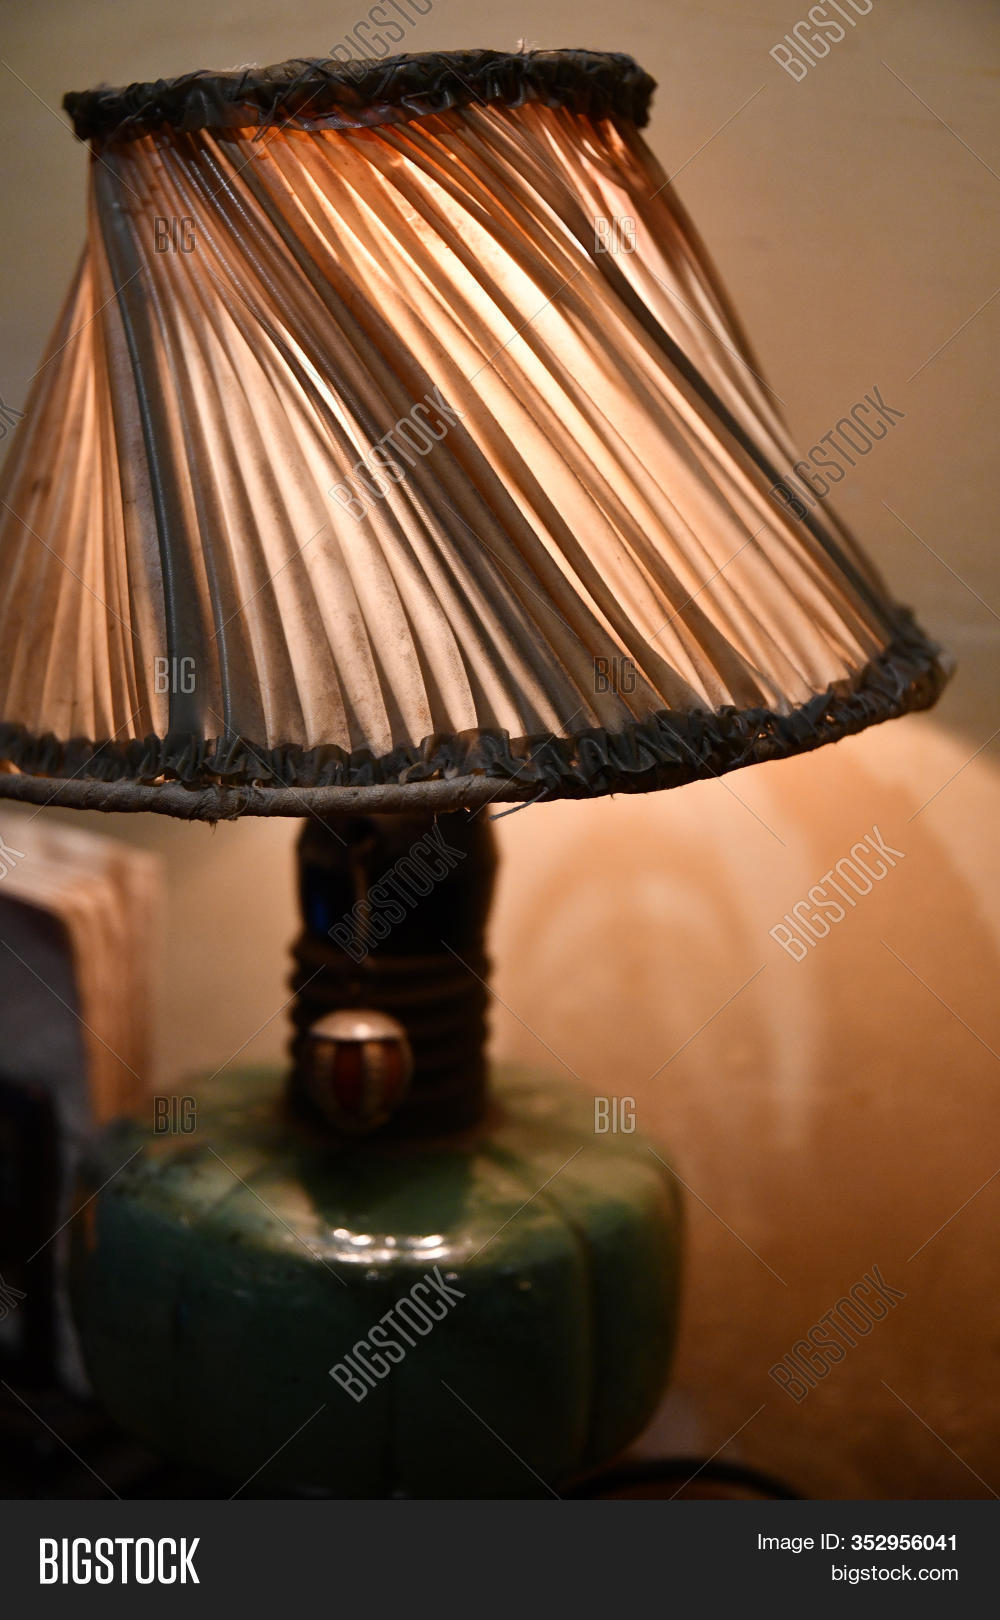 Details Antique Table Image Photo Free Trial Bigstock